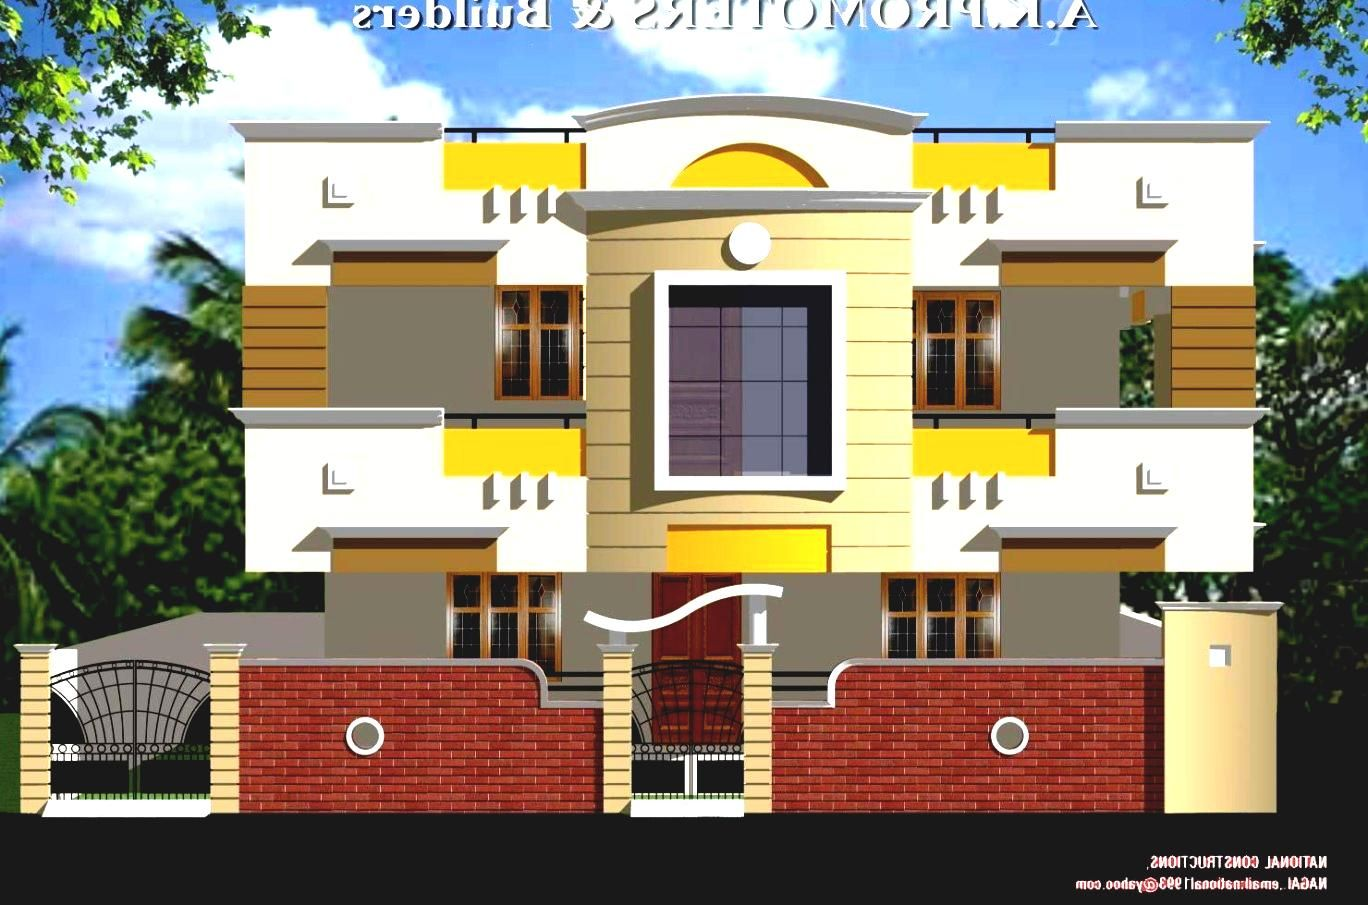 Front view indian house plans | majji srinivasarao | Pinterest ...